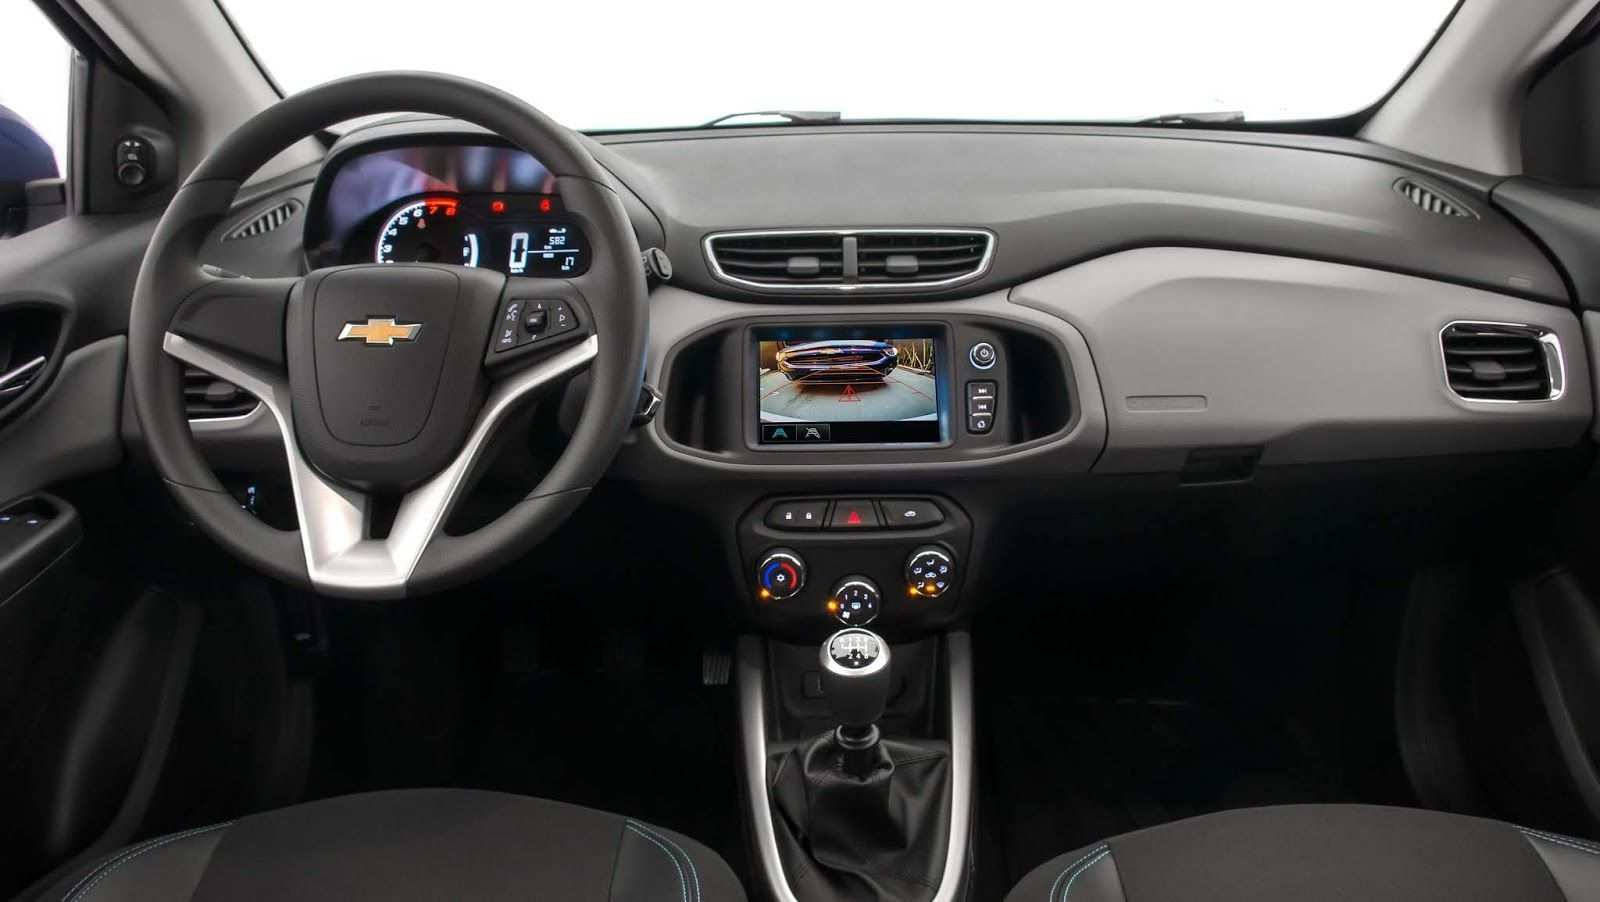 34 Great Best Prisma Chevrolet 2019 Rumor Interior with Best Prisma Chevrolet 2019 Rumor